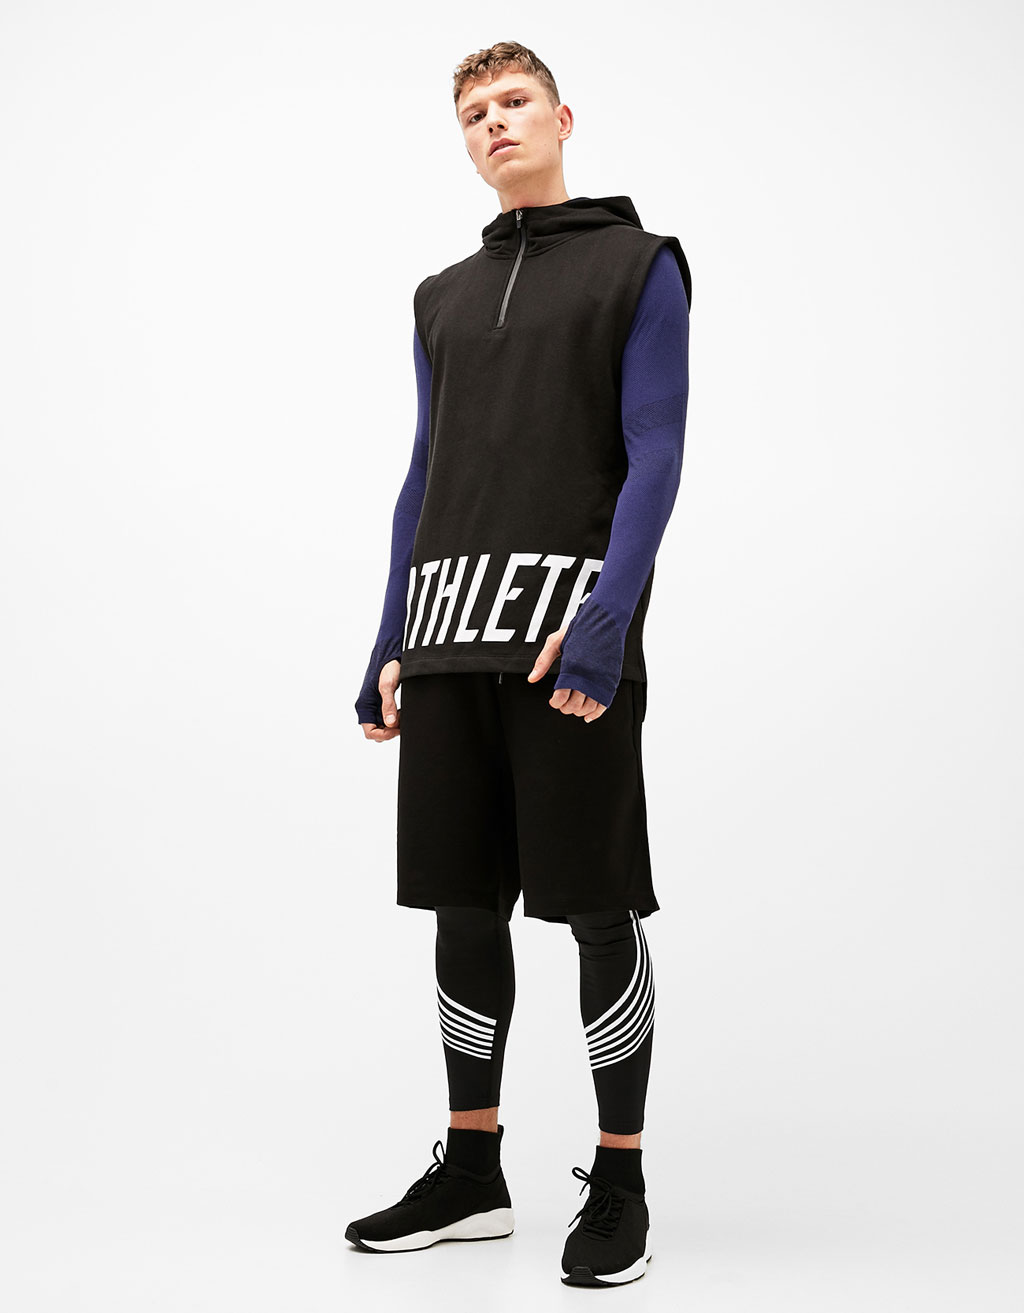 'Athlete' hooded sports sweatshirt